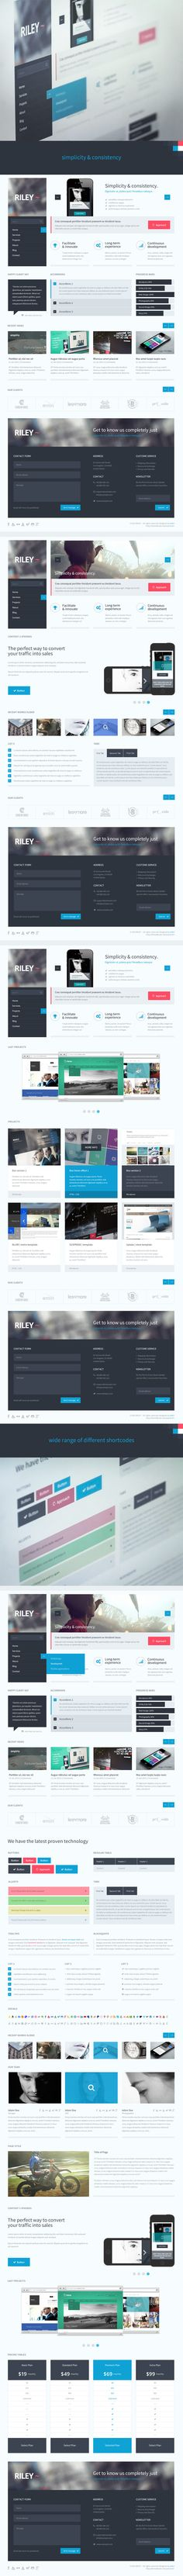 Awesome examples of flat UI design - Riley - Unique PSD template by entiri